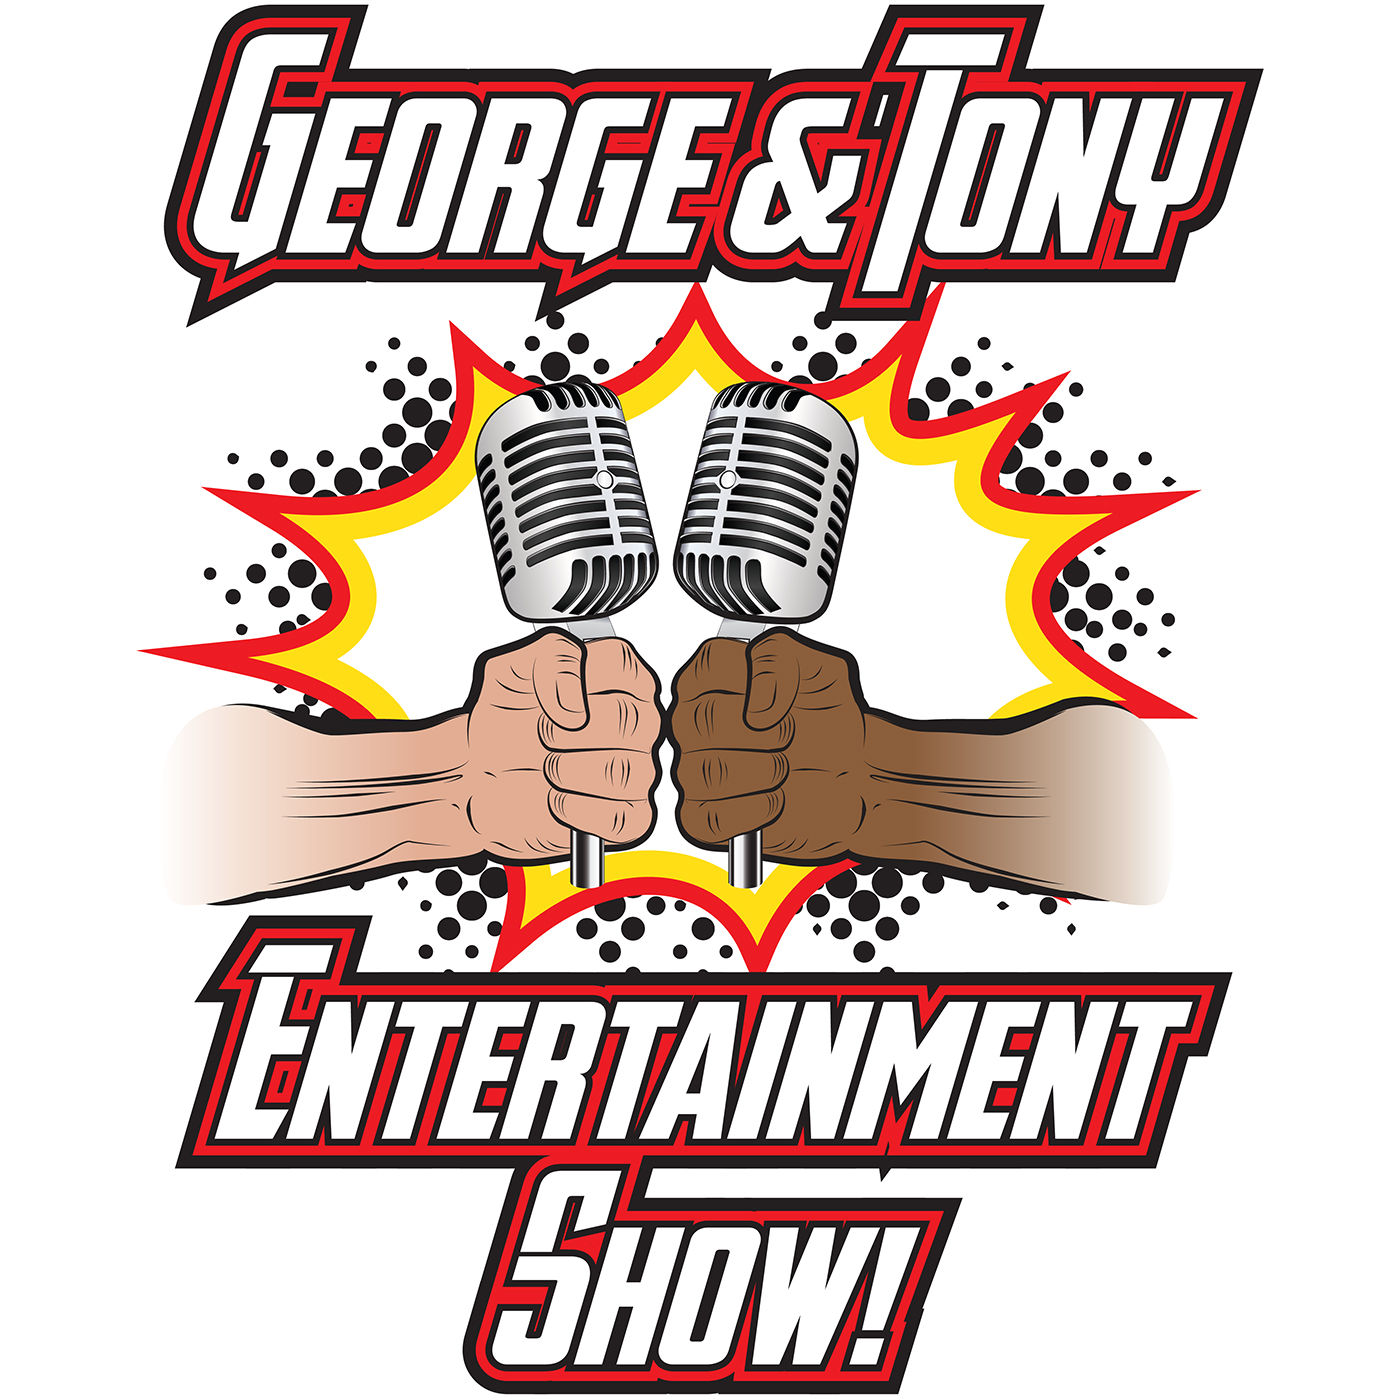 George and Tony Entertainment Show #65